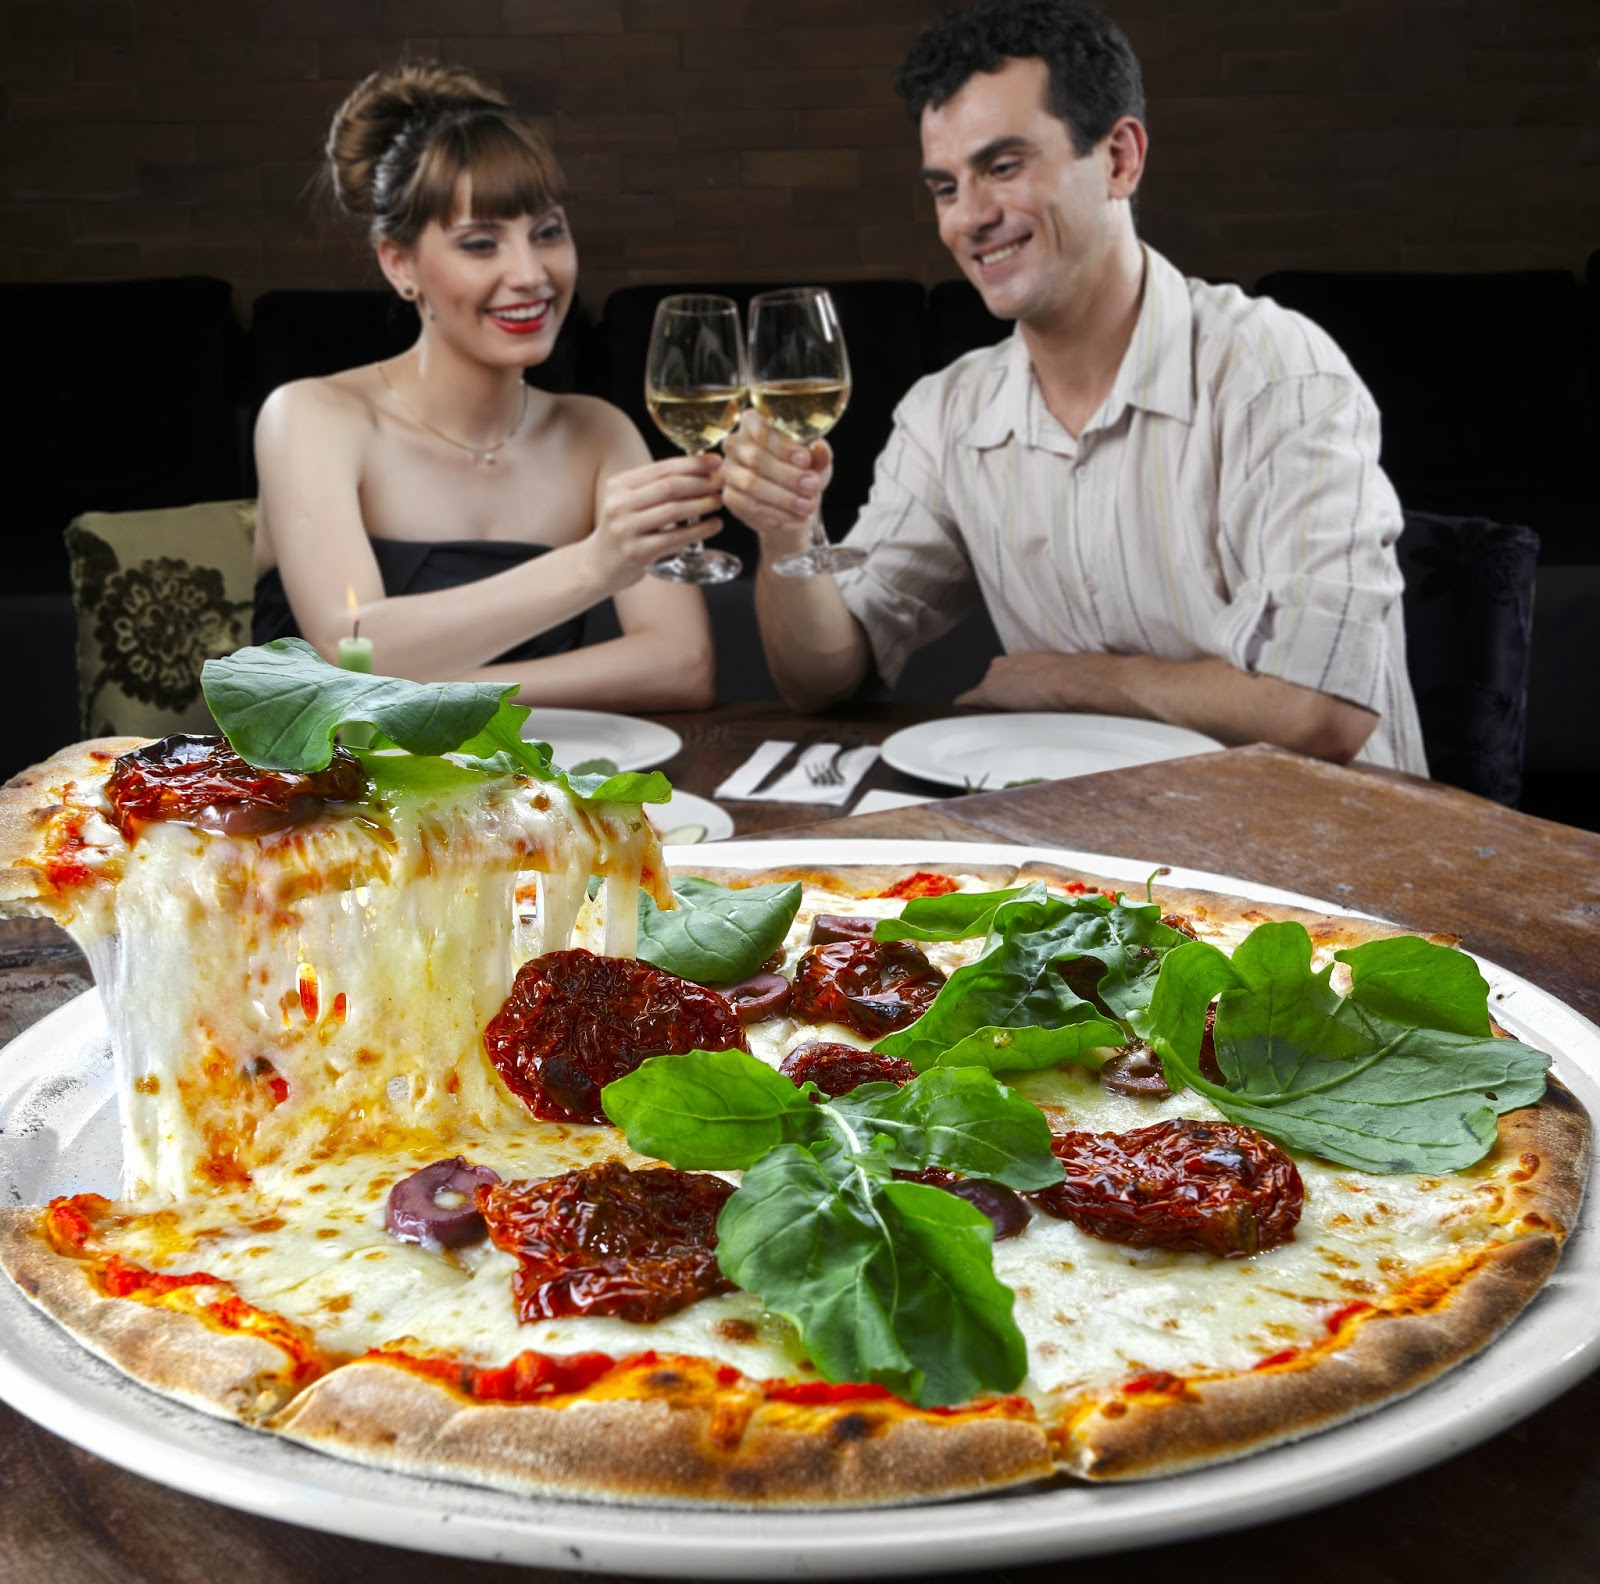 Pizza - HQ Stock Photo Fotolia #4 | Free Stock Photos: elfadely.blogspot.com/2013/12/pizza-hq-stock-photo-fotolia-4.html#!